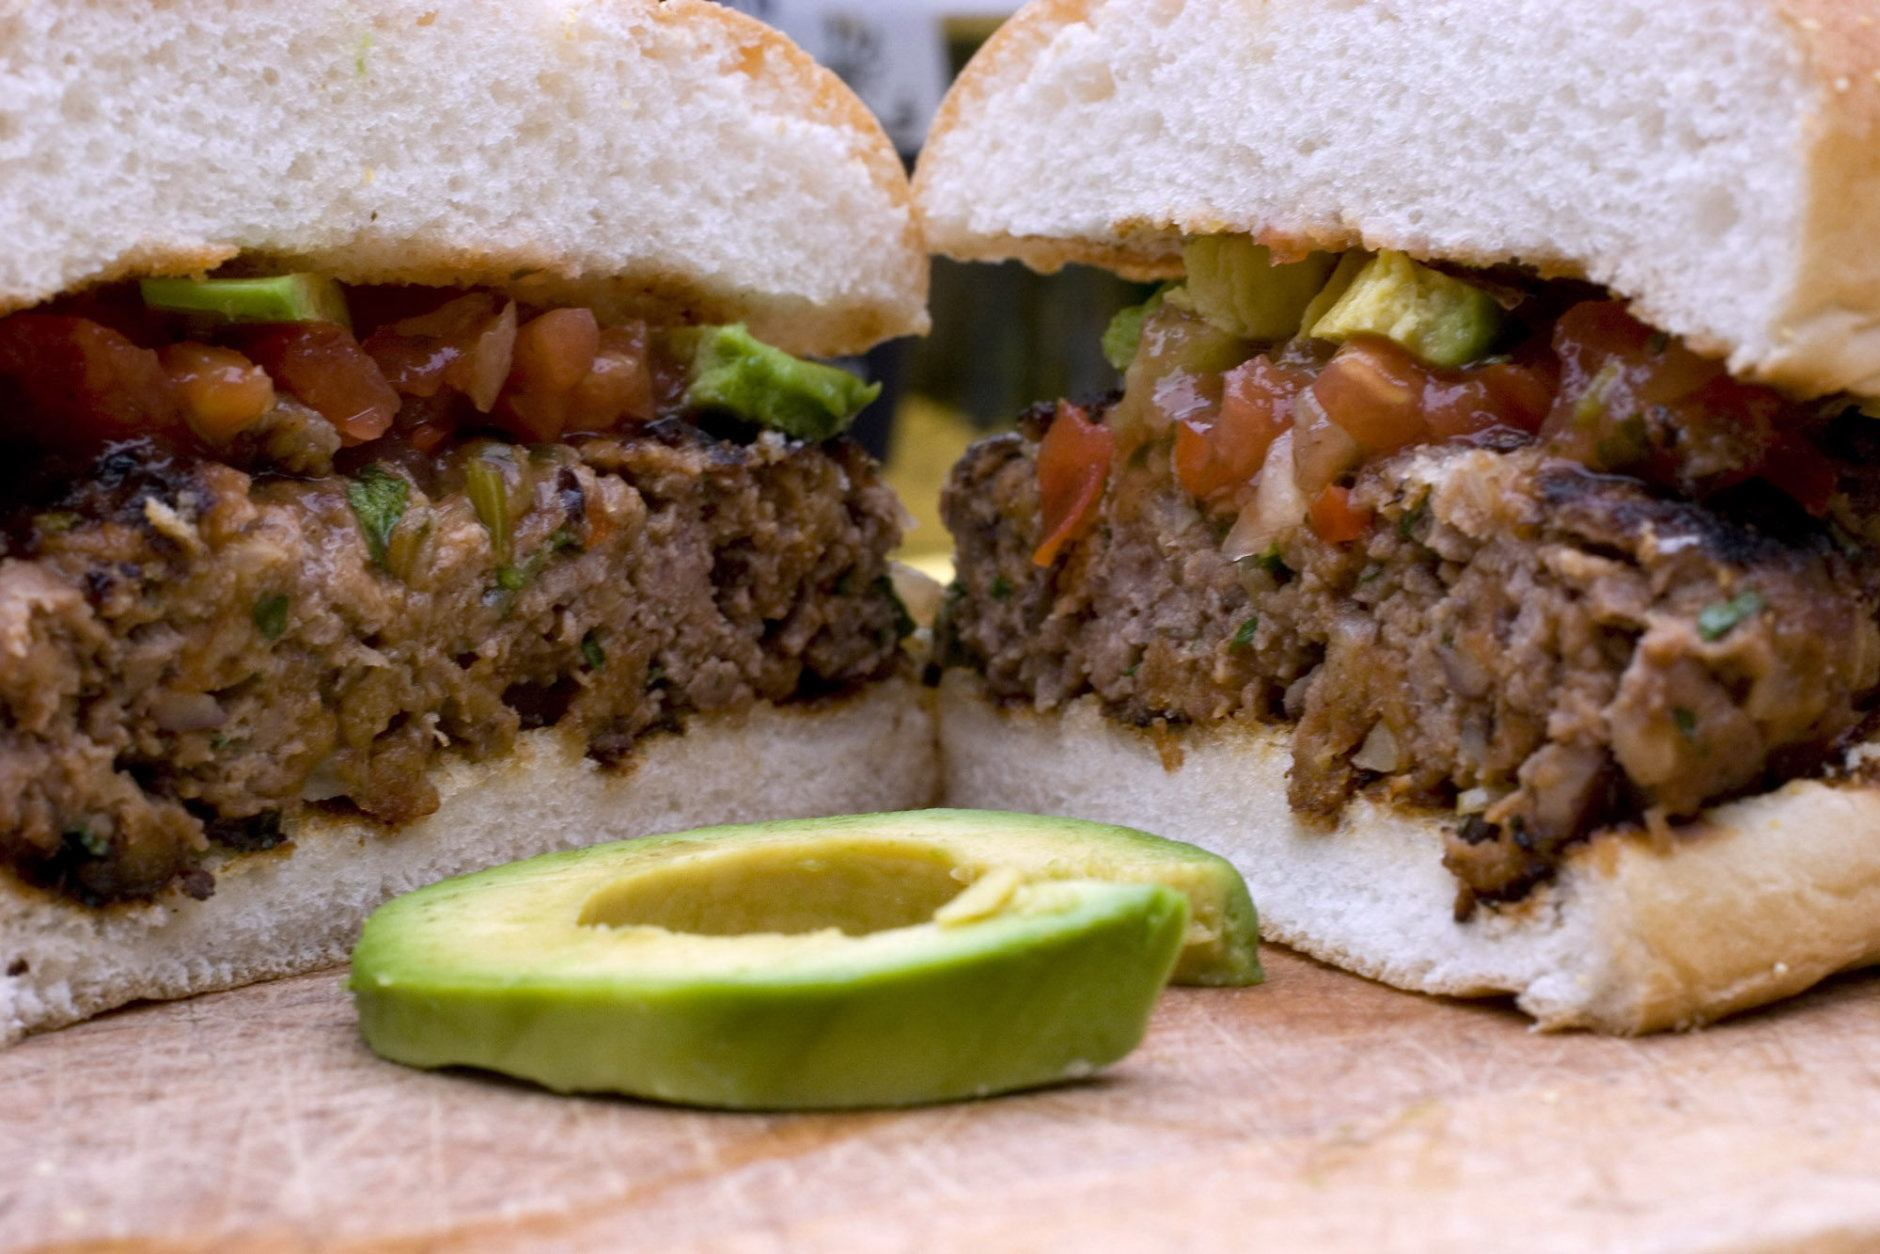 ** FOR USE WITH AP LIFESTYLES ** Salsa and avocado top a Smokey Beef and Black Bean Burger in this Aug. 22, 2007 photo. Some healthful ingredients easily mixed into 85 percent lean ground beef enhance the flavor while reducing the amount of meat (and fat) in each burger. (AP Photo/Larry Crowe)